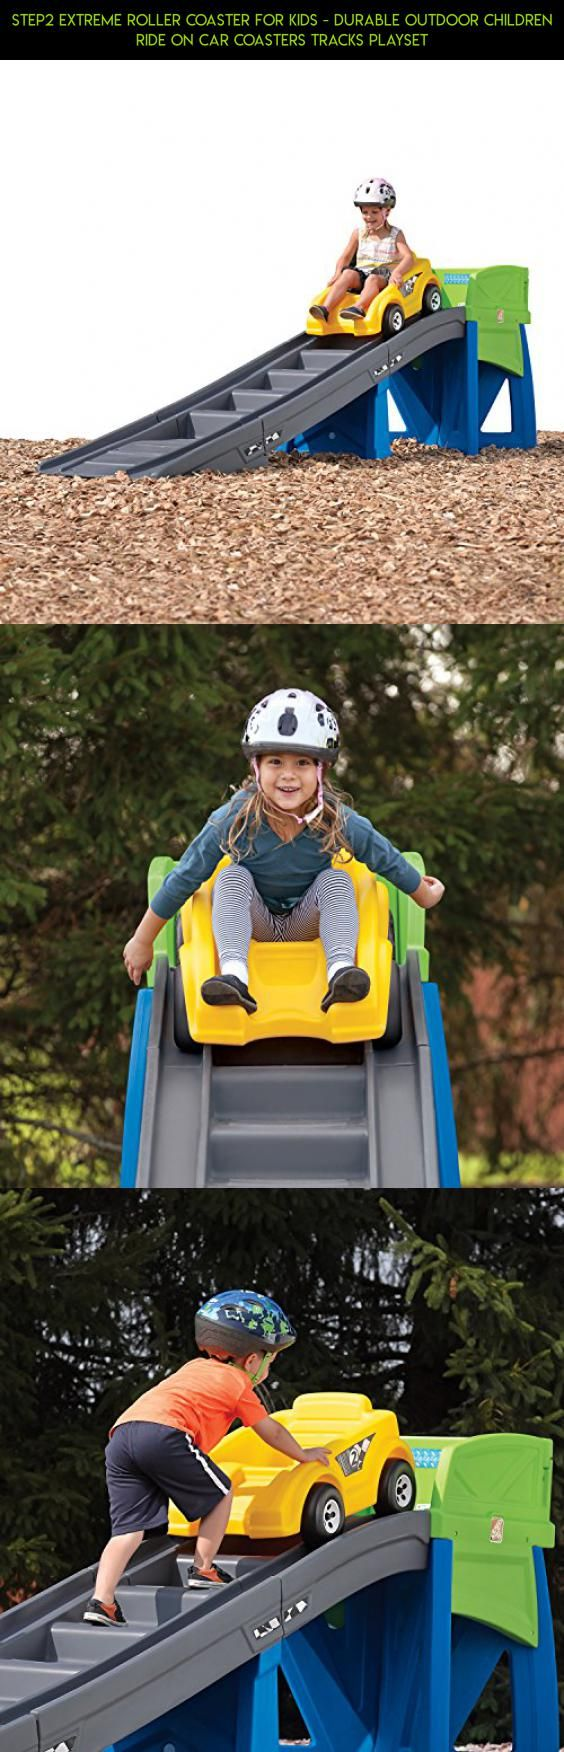 25 best ideas about outdoor car track for kids on